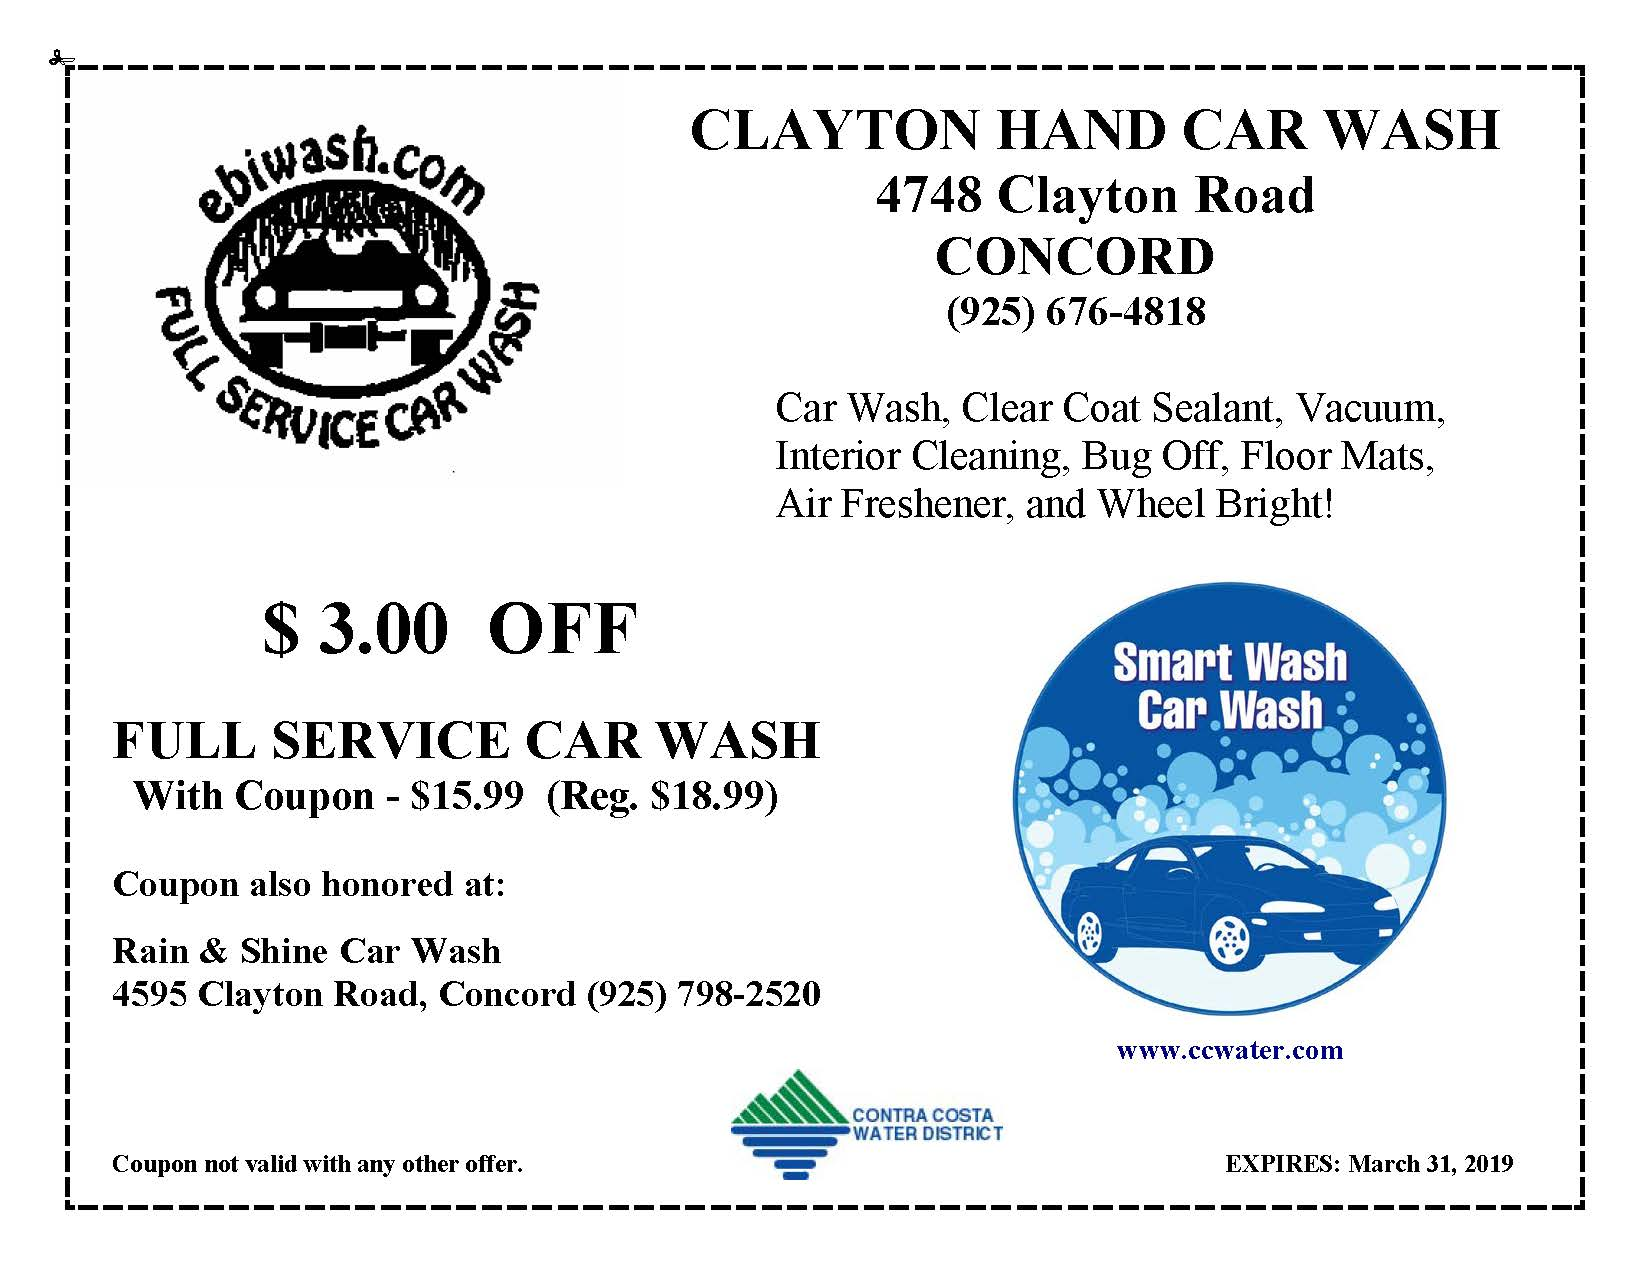 Car Wash Coupons Contra Costa Water District Ca